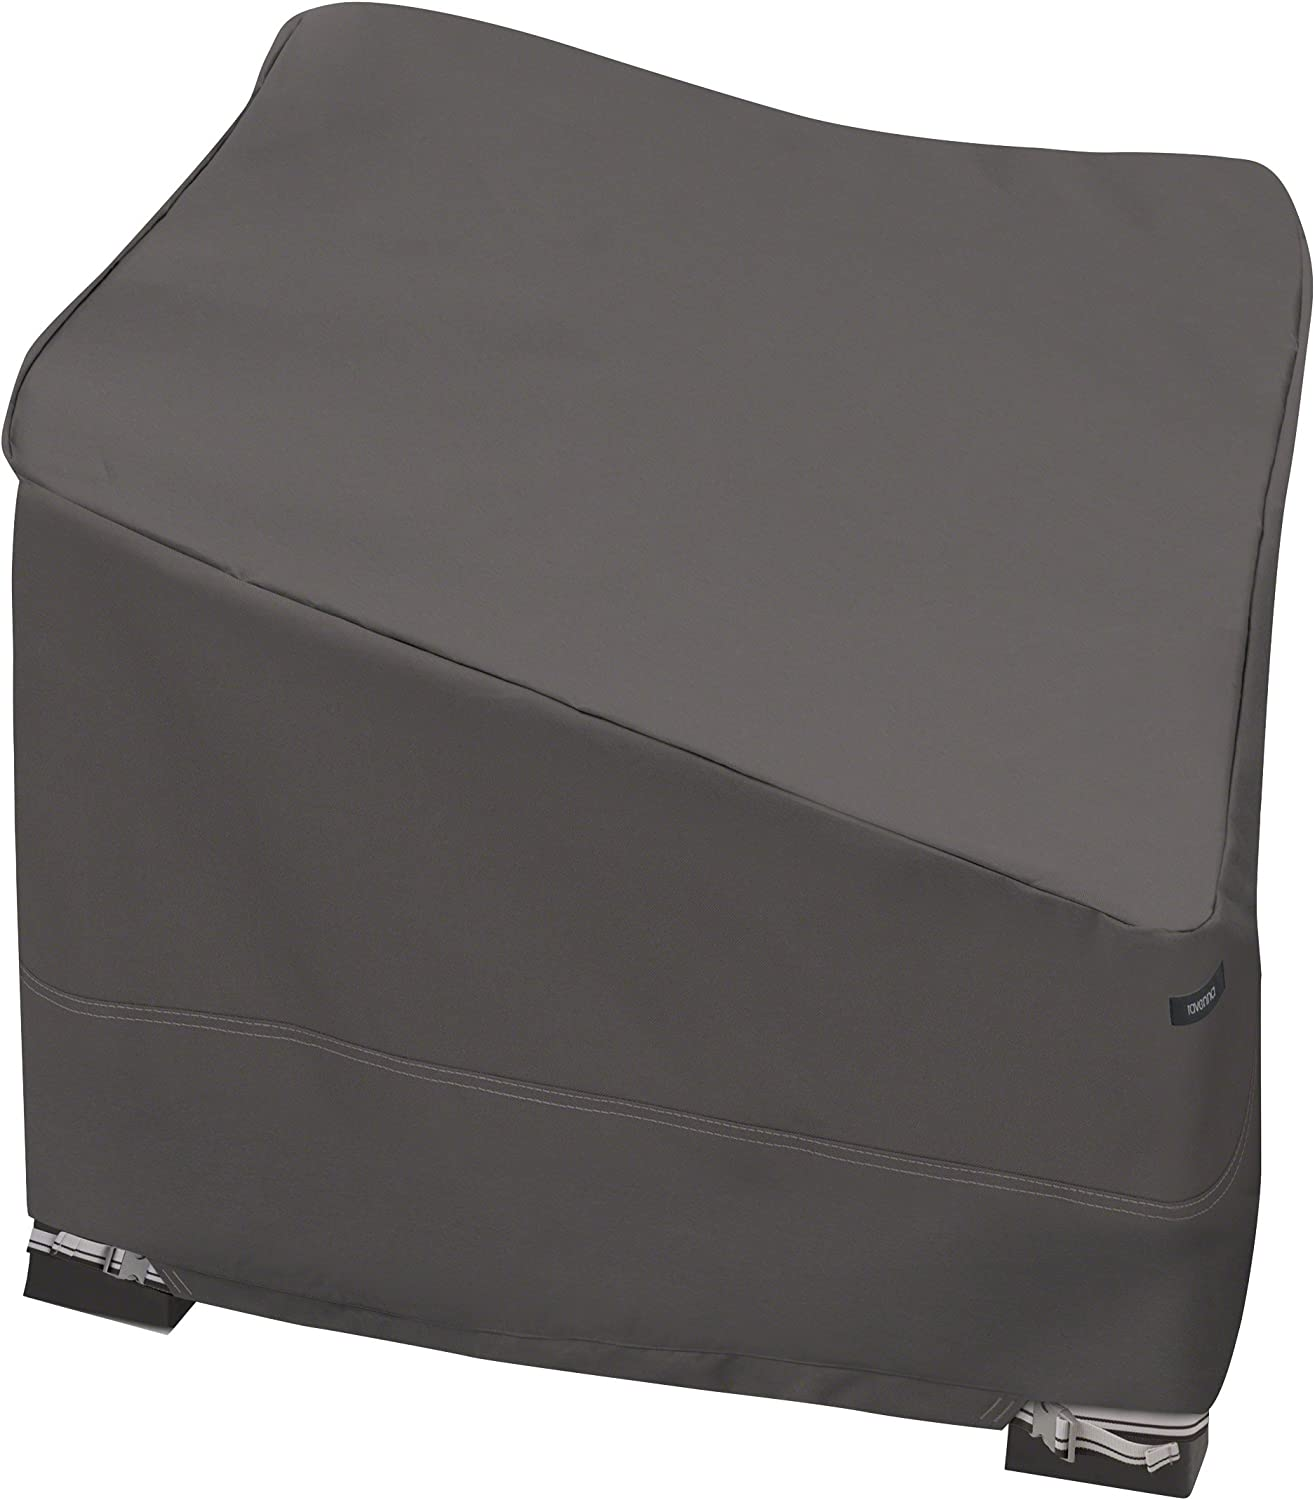 Classic Accessories Ravenna Patio Corner Sectional Cover - Premium Outdoor Furniture Cover with Durable and Water Resistant Fabric (55-427-045101-EC)